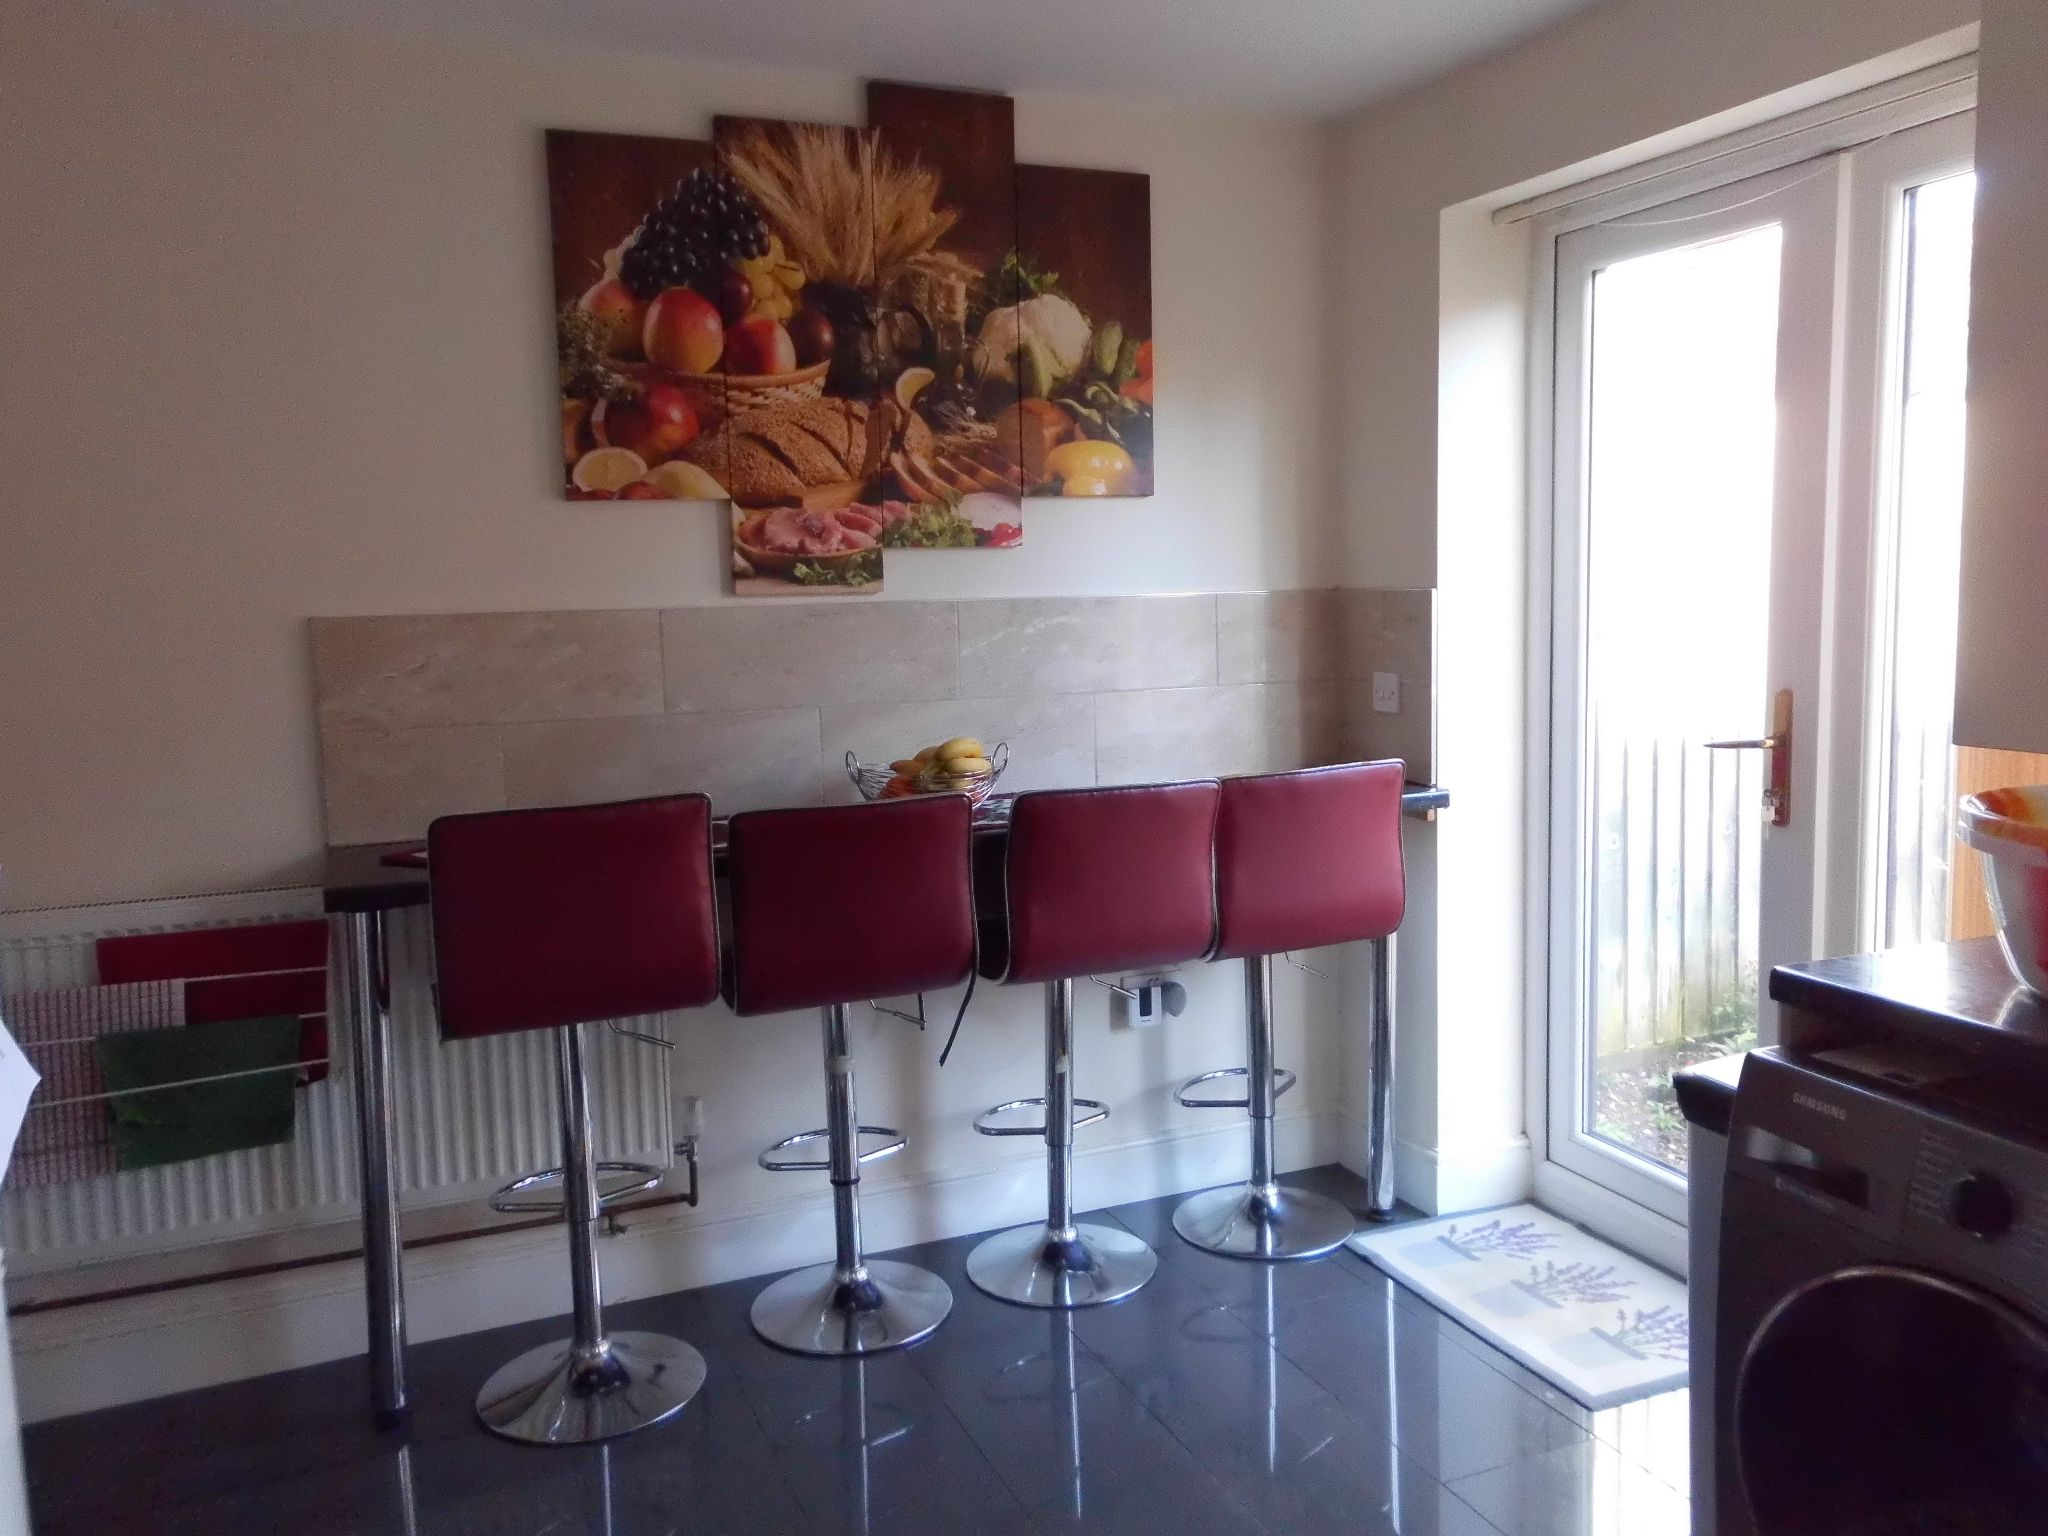 3 bedroom semi-detached house For Sale in Leicester - Photograph 8.